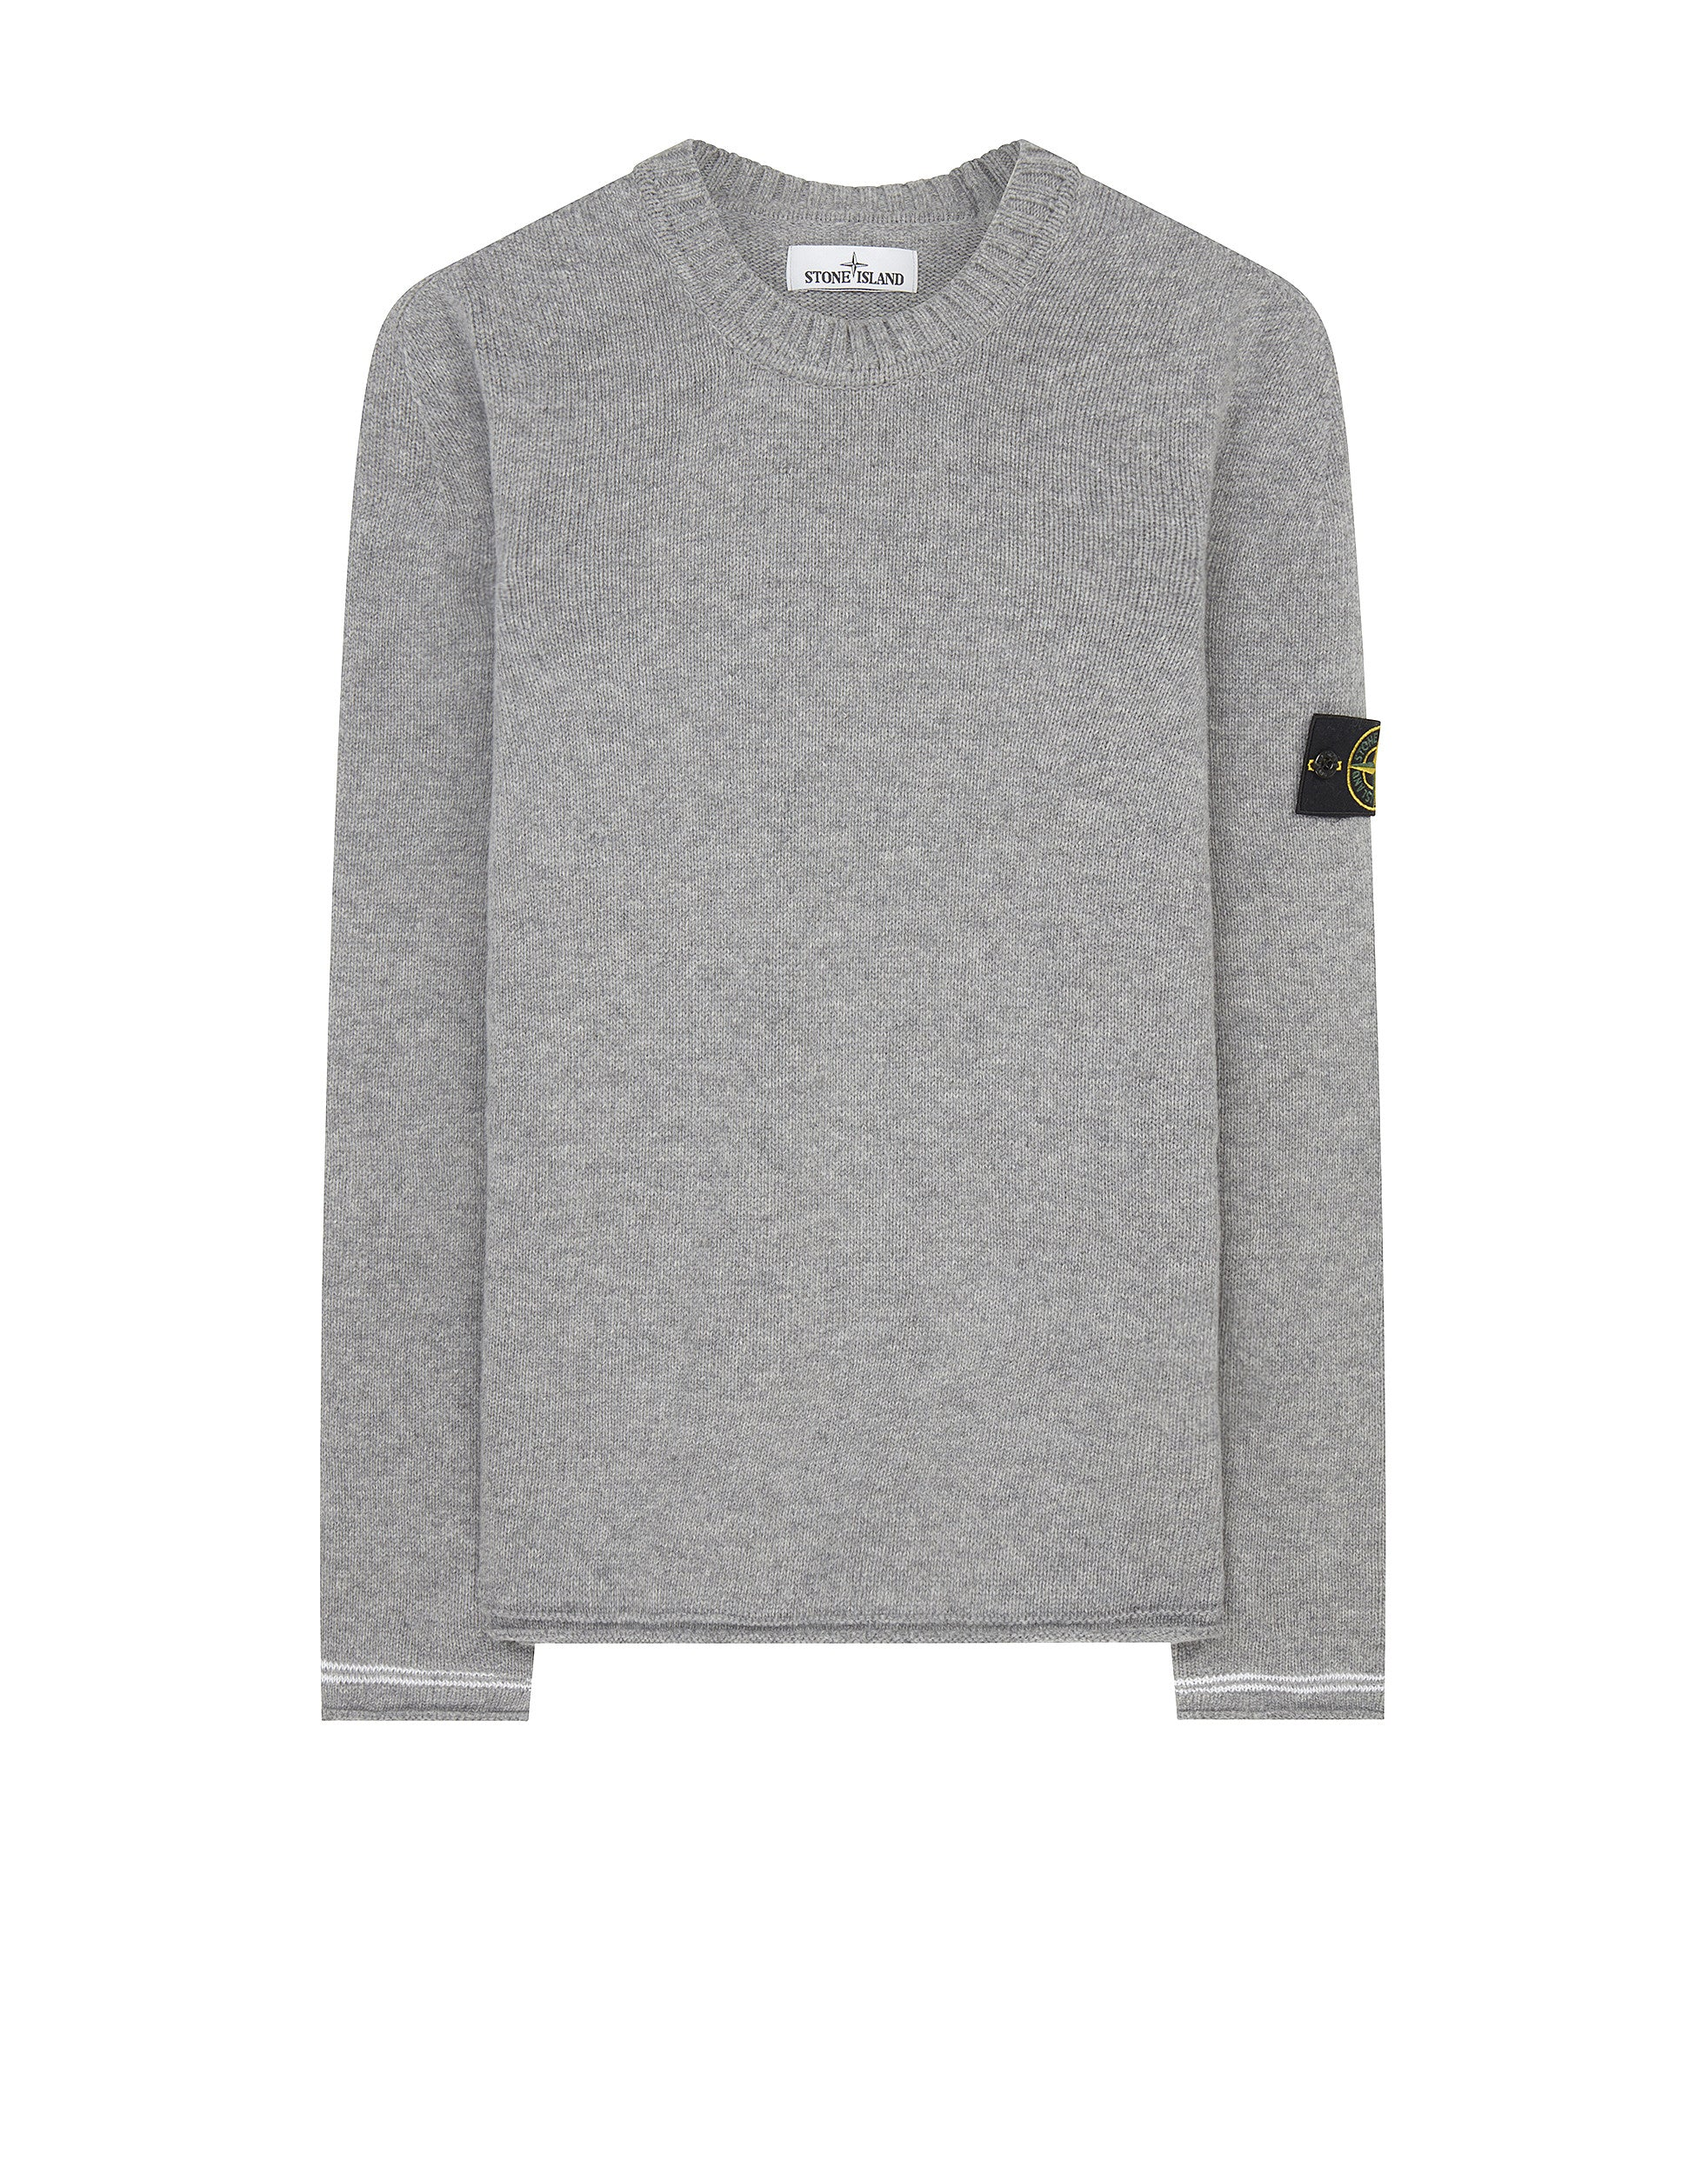 539A3 Crew Neck Knit in Grey